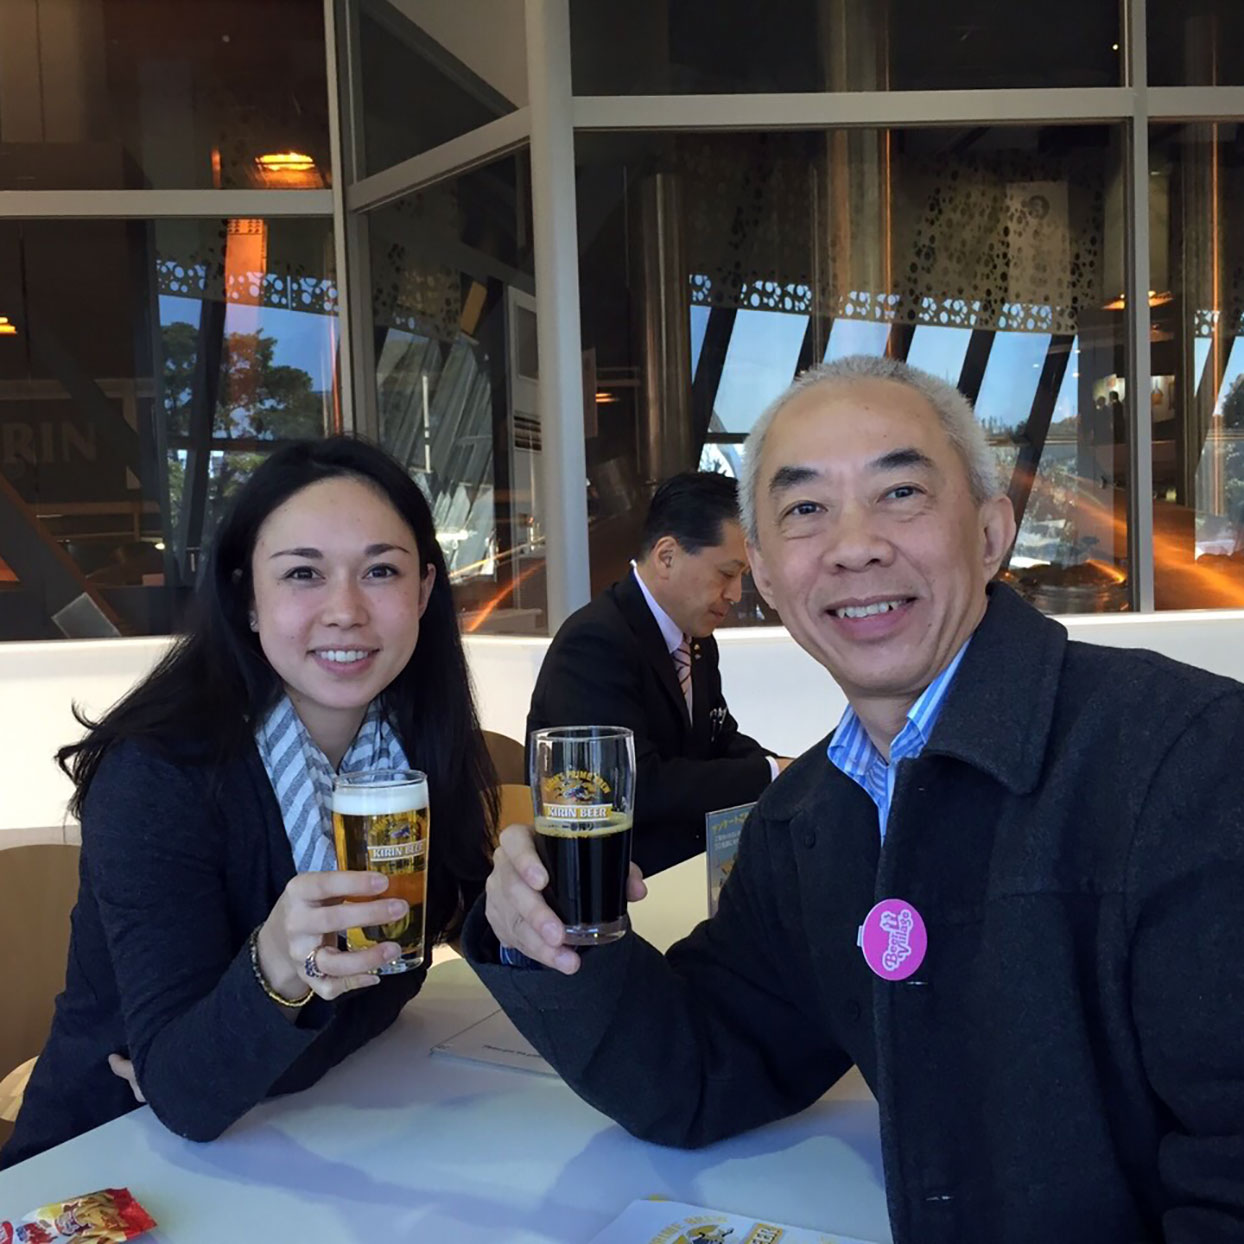 Breana Lai Killeen and her father at the Kirin beer factory in Japan